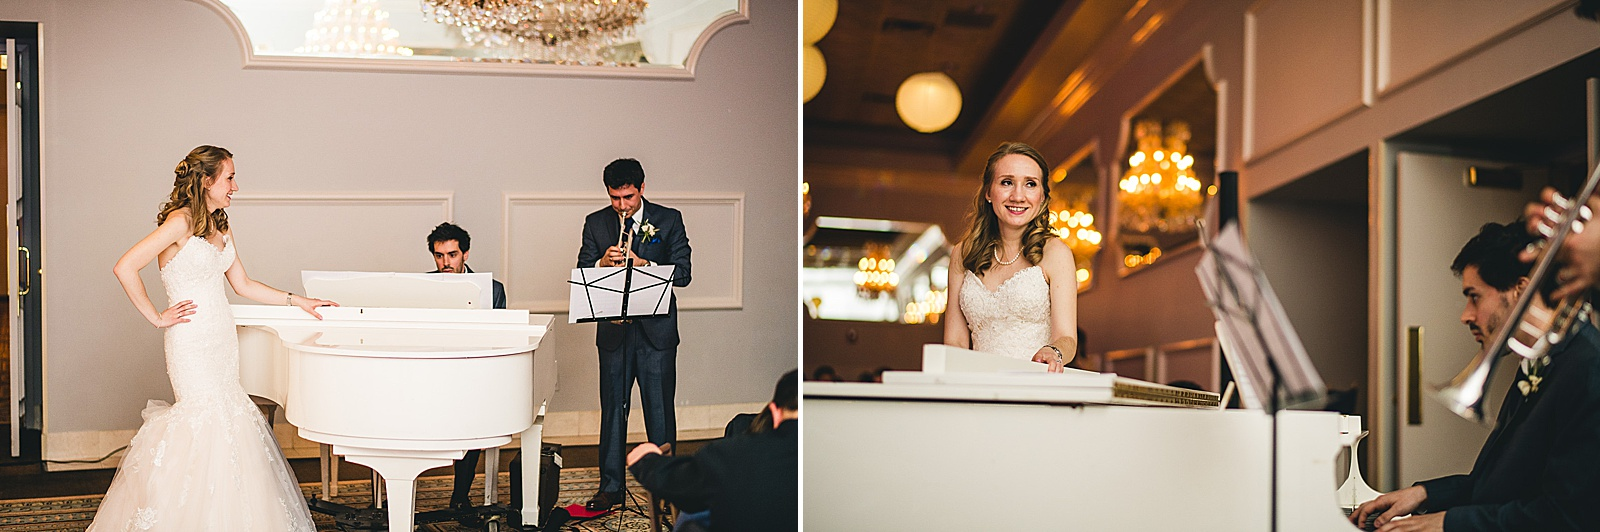 32 groom playing trumpet for bride - Oakbrook Wedding Photos at Drury Lane // Marina + Joe